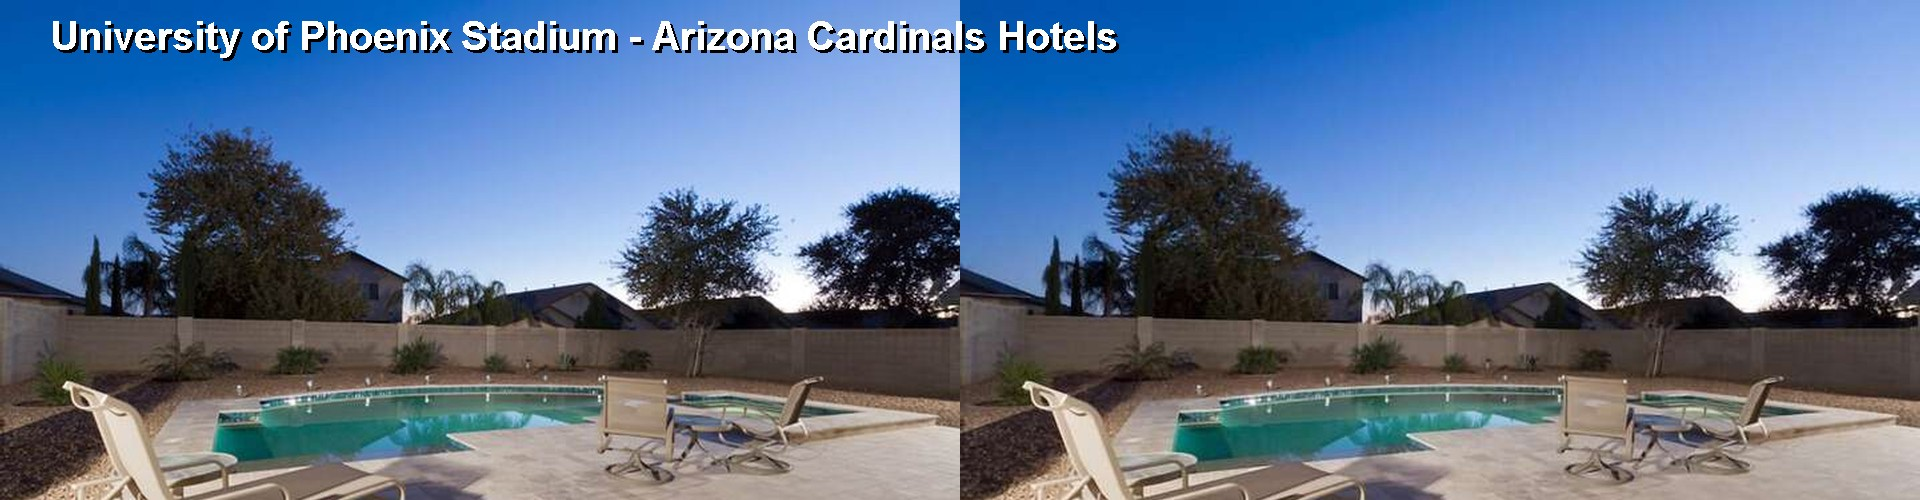 5 Best Hotels Near University Of Phoenix Stadium Arizona Cardinals